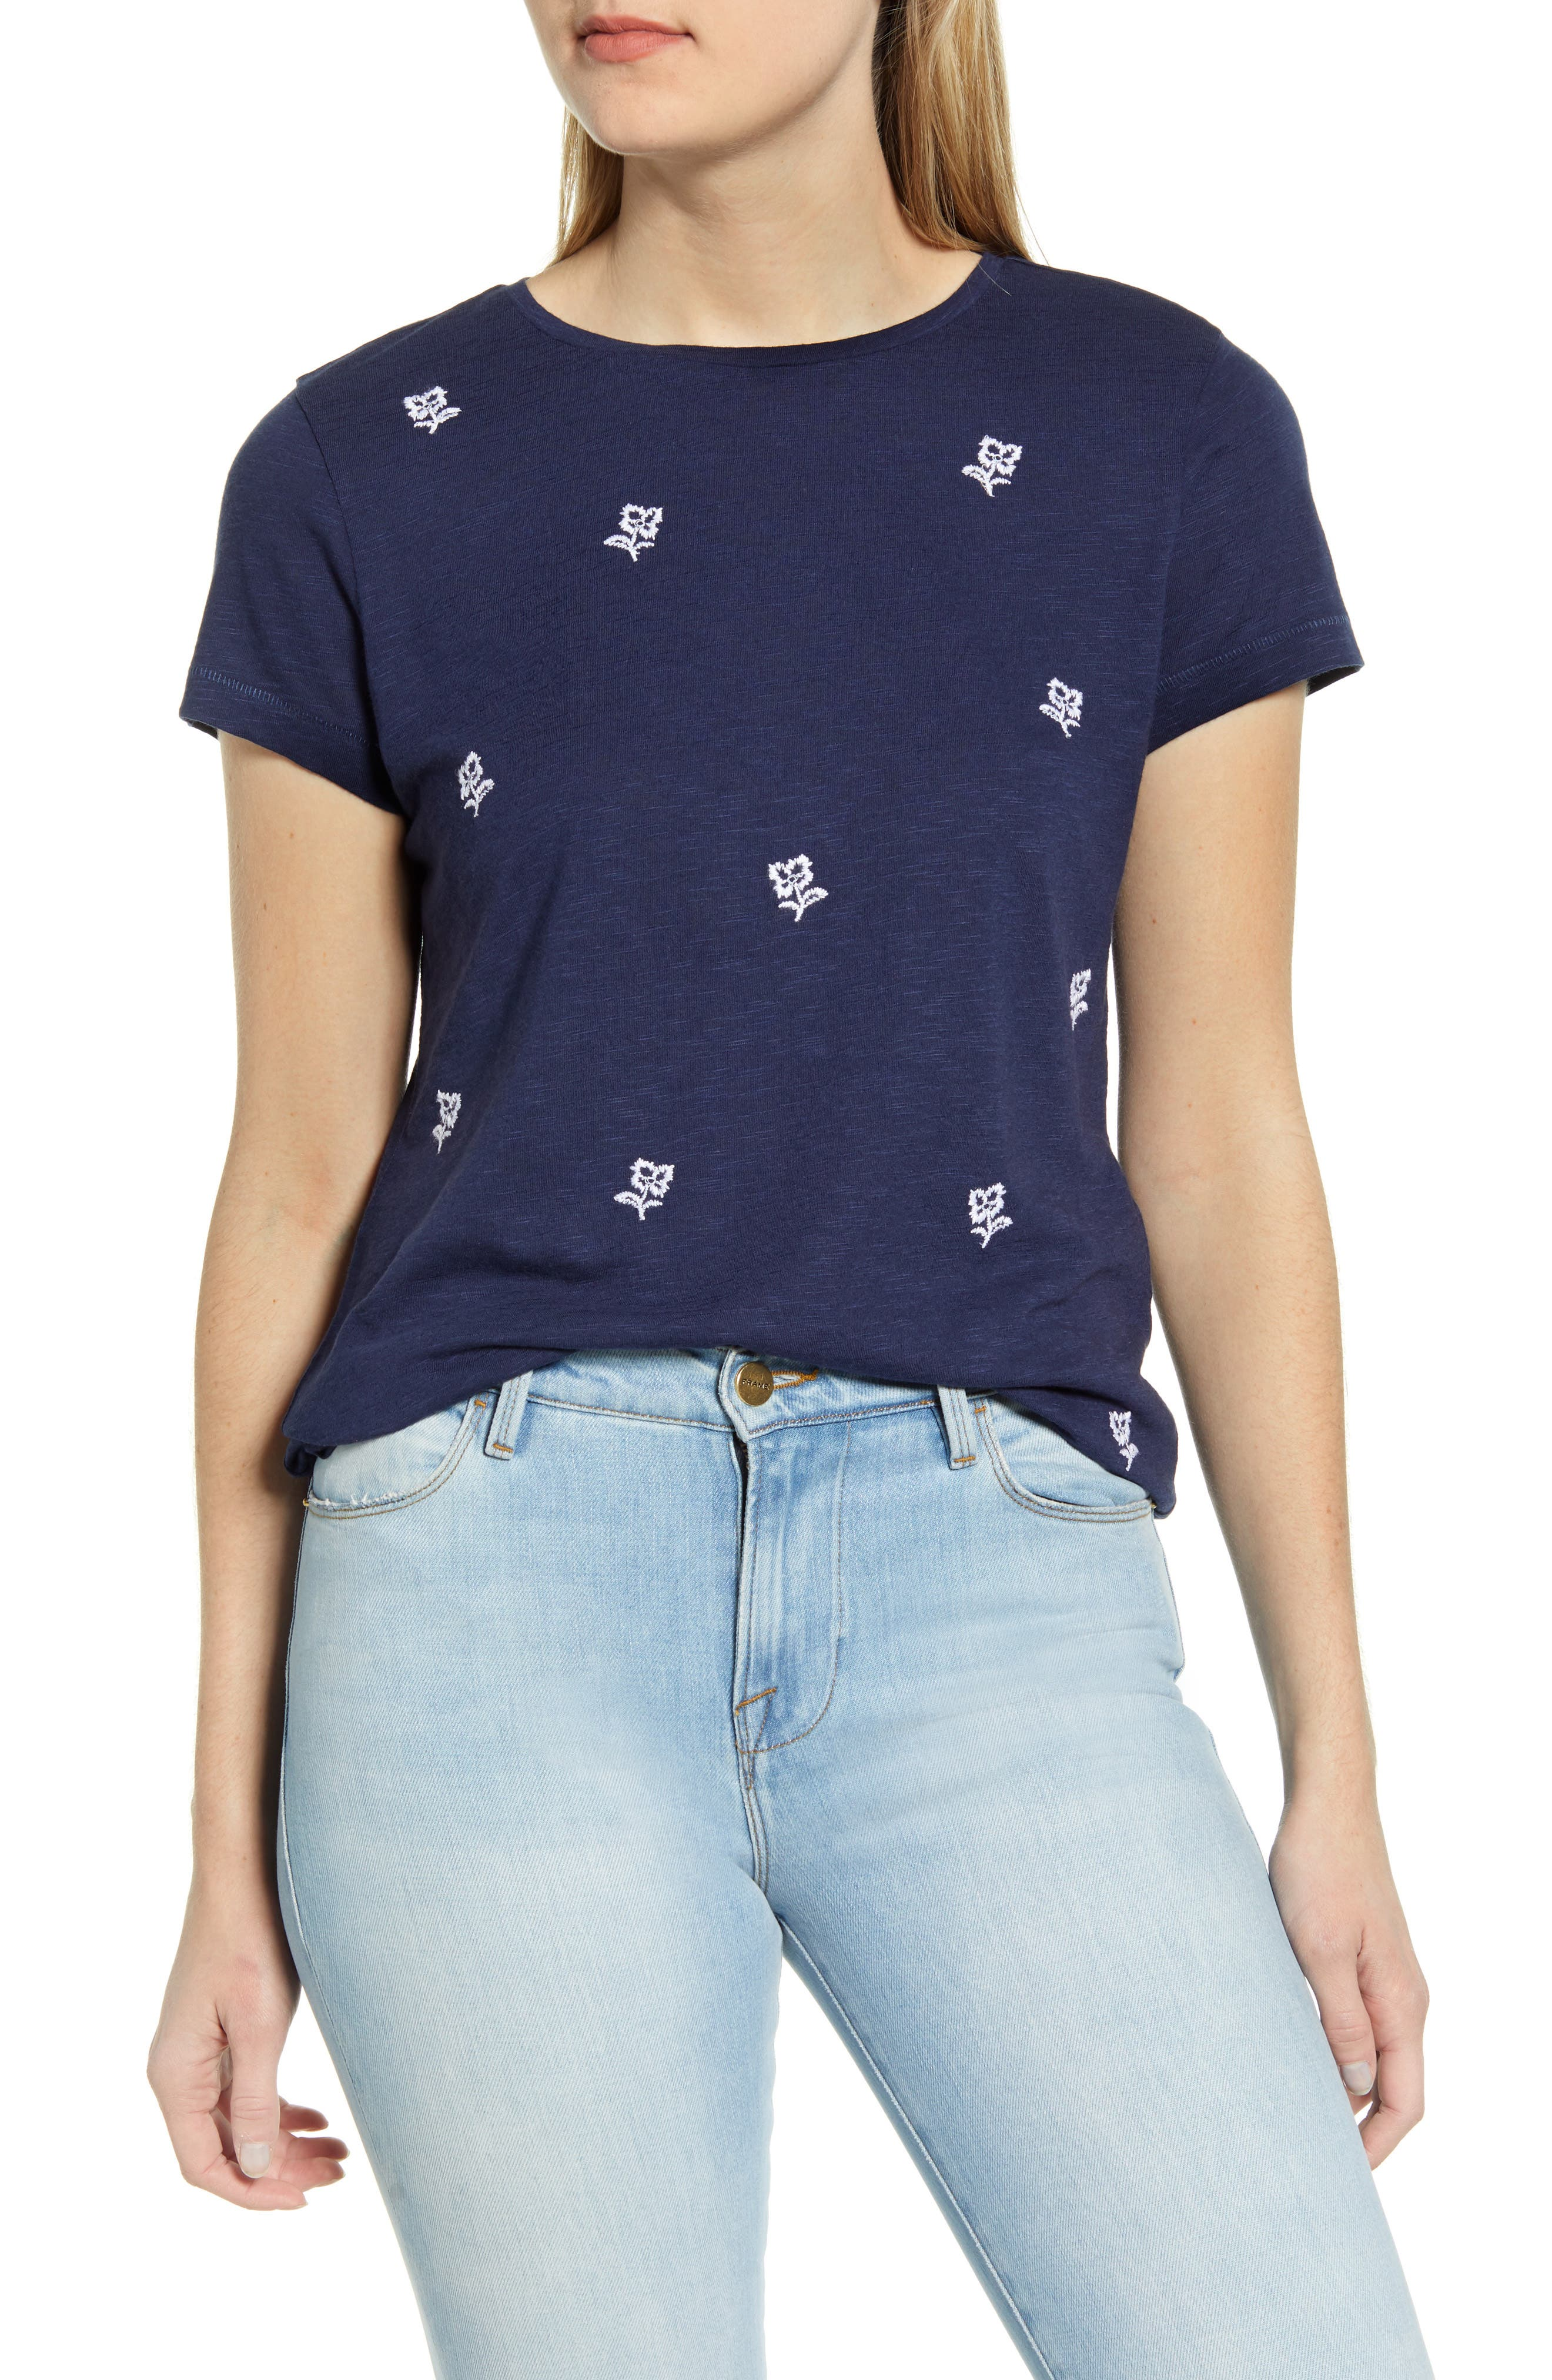 Sweet little flowers dot the front of this comfy T-shirt made from a slubbed cotton blend. Style Name: Caslon Floral Embroidered T-Shirt. Style Number: 5999917. Available in stores.